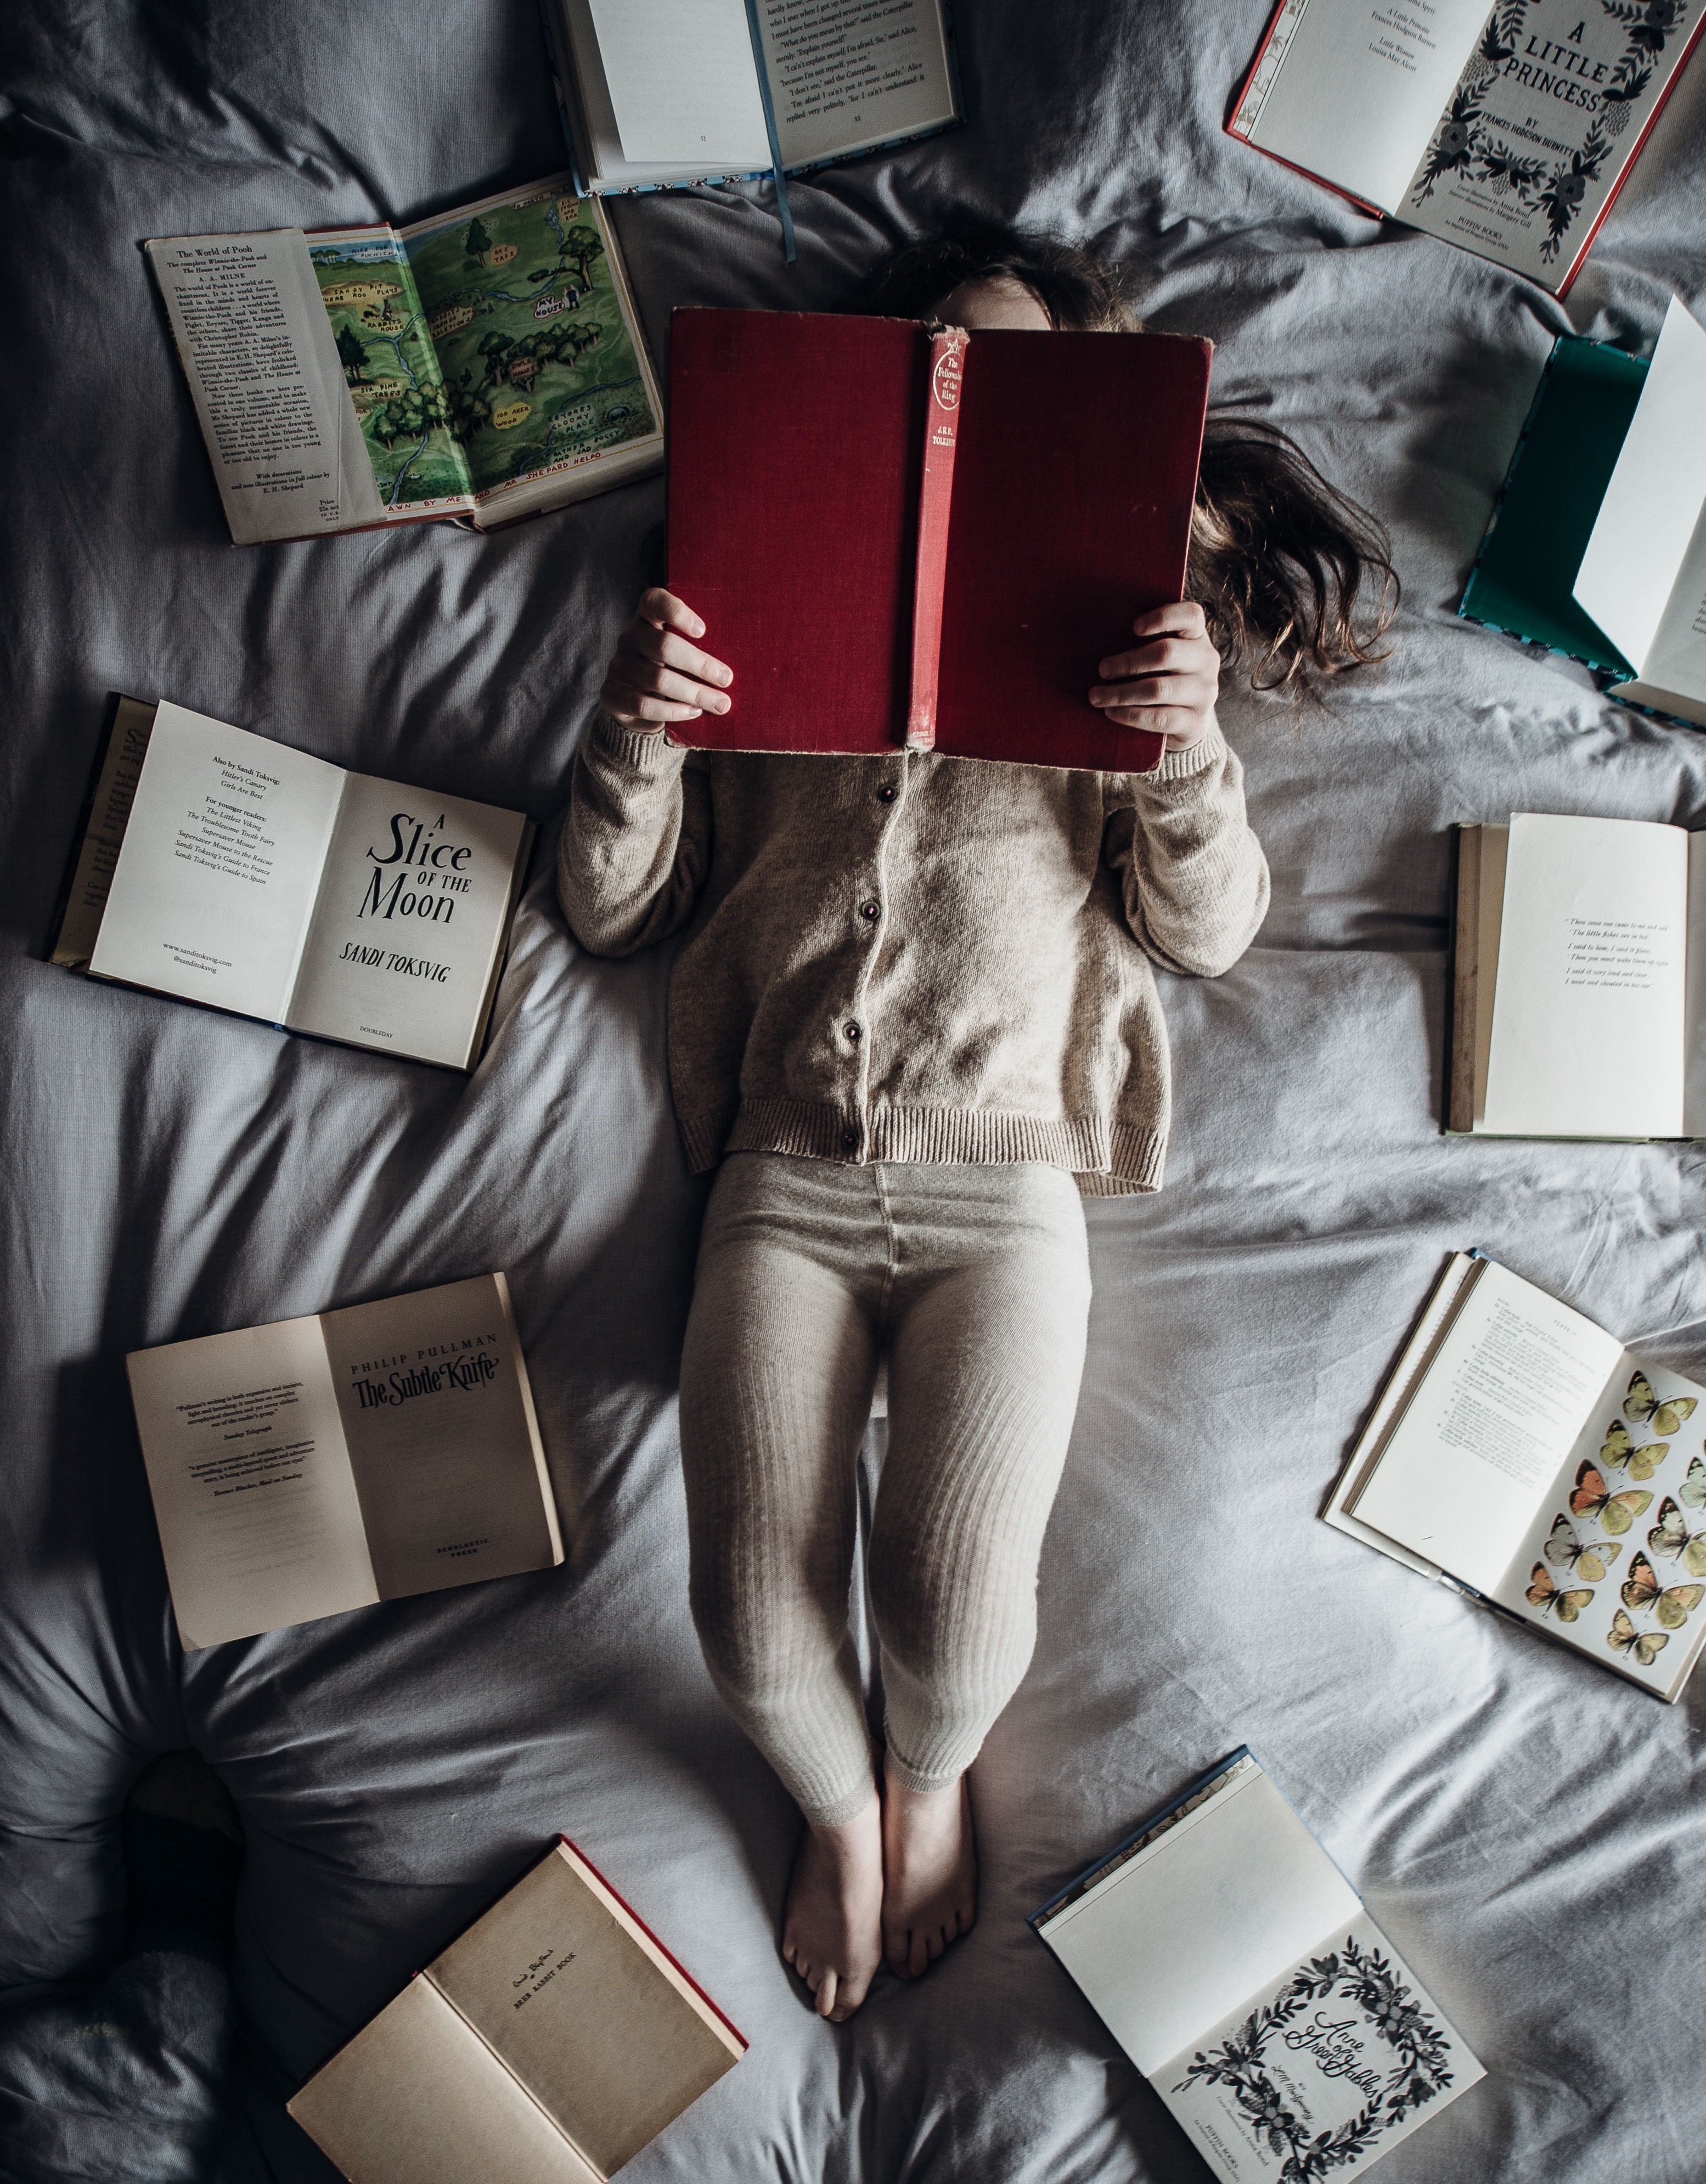 a child reading a book in bed surrounded by books